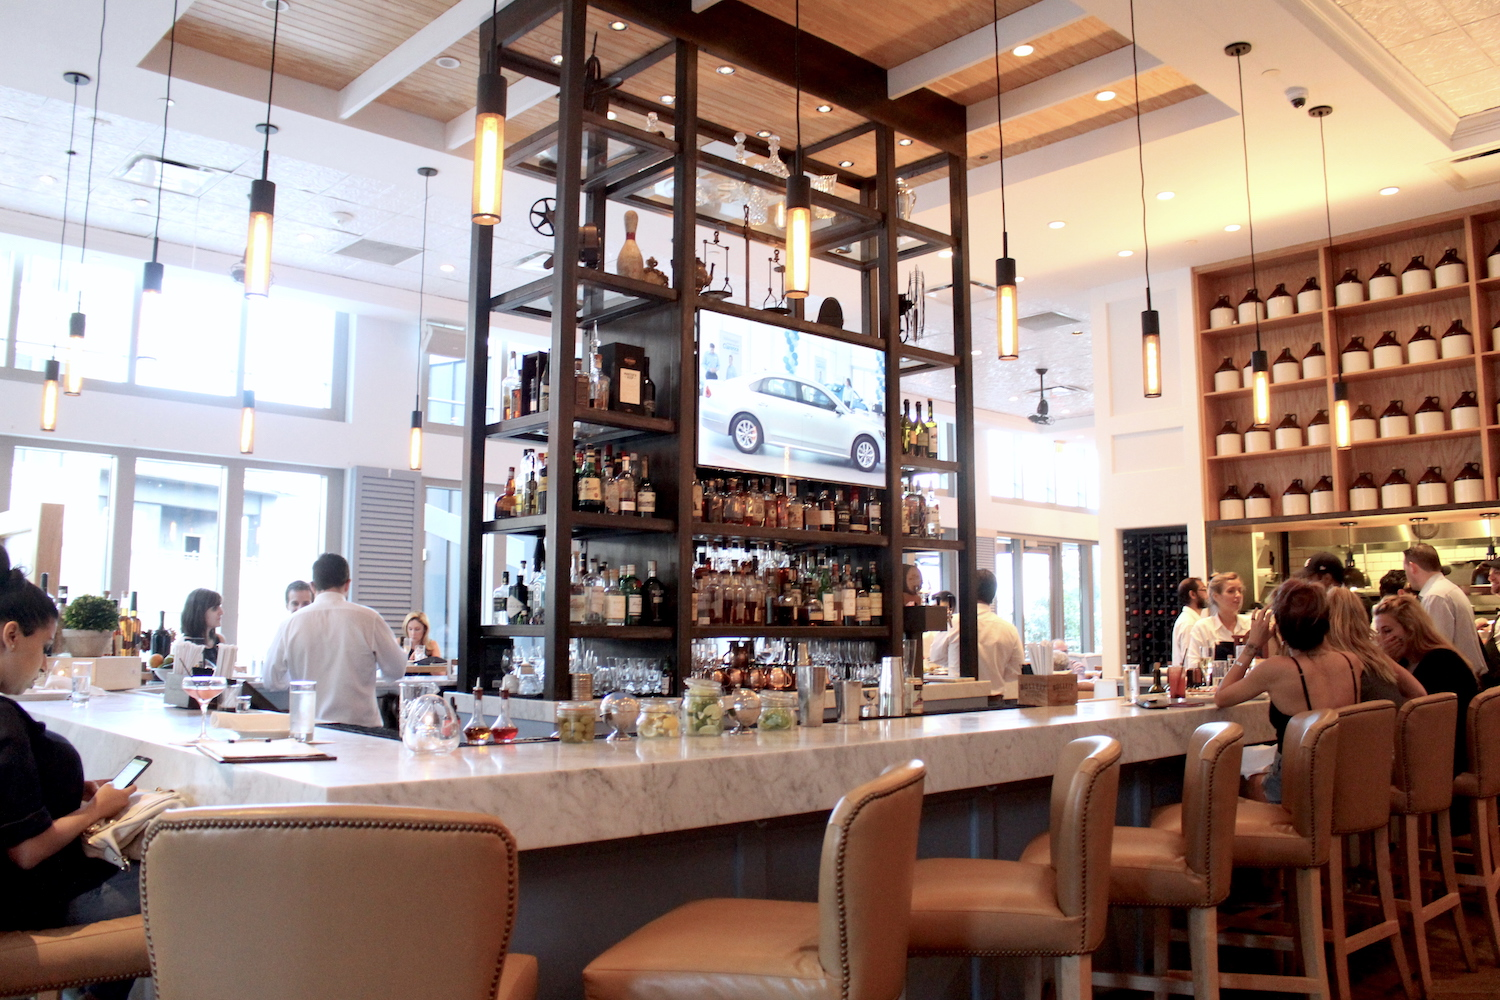 0918613ba32 Places to Eat: The Southern Gentleman | Peachfully Chic